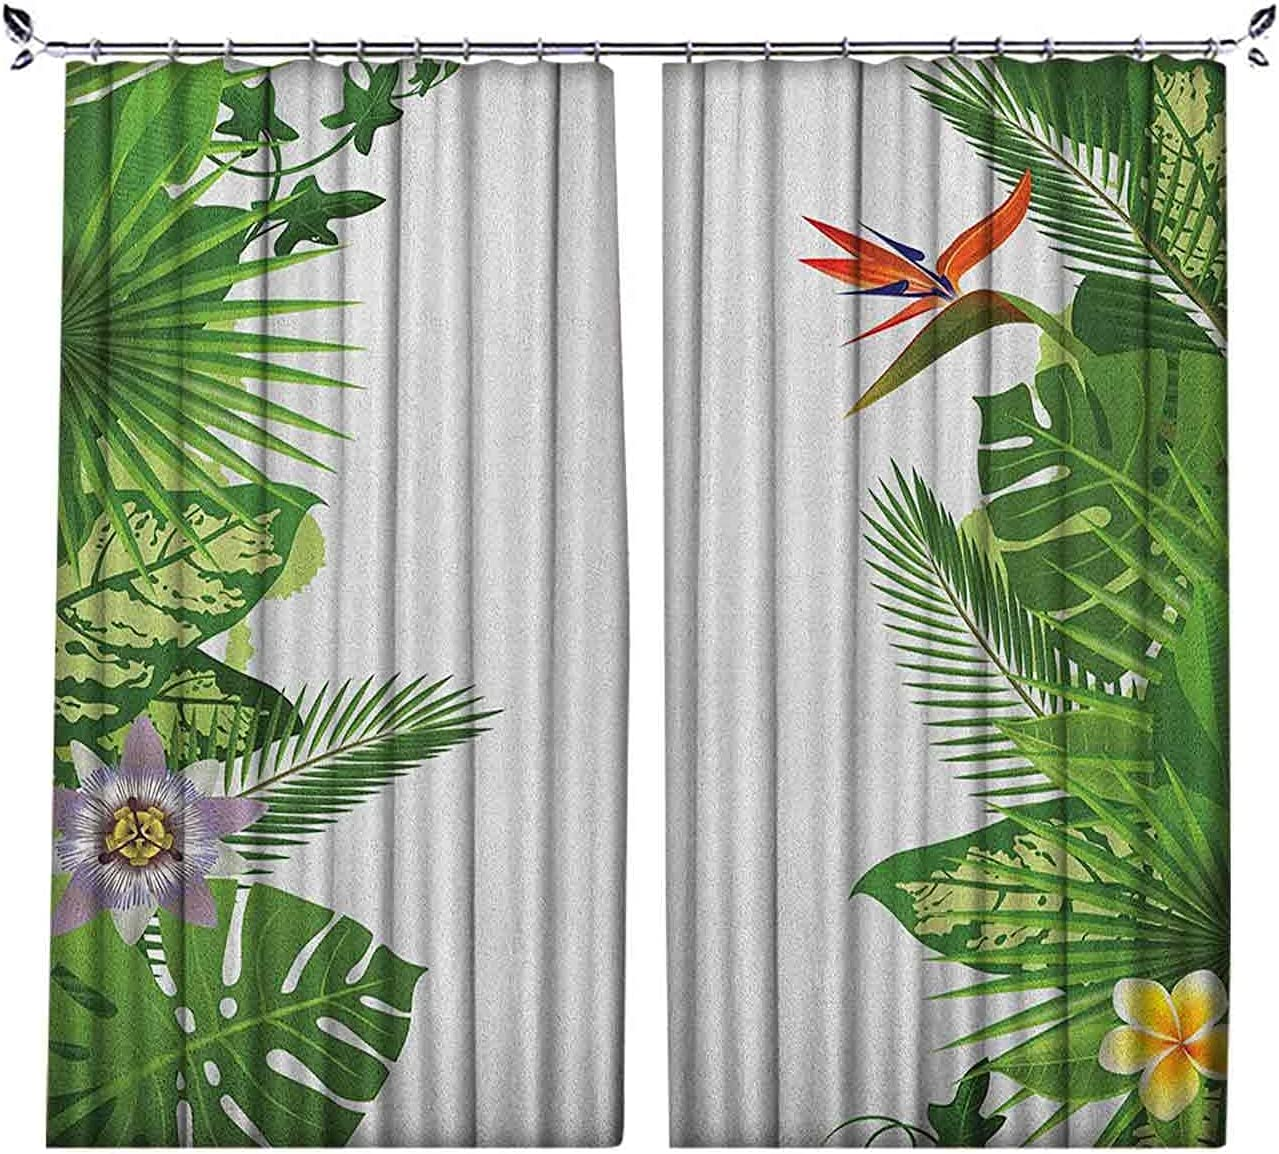 90% Blackout Tropical Curtains Time sale trust Growth with Hawaii Rainforest of